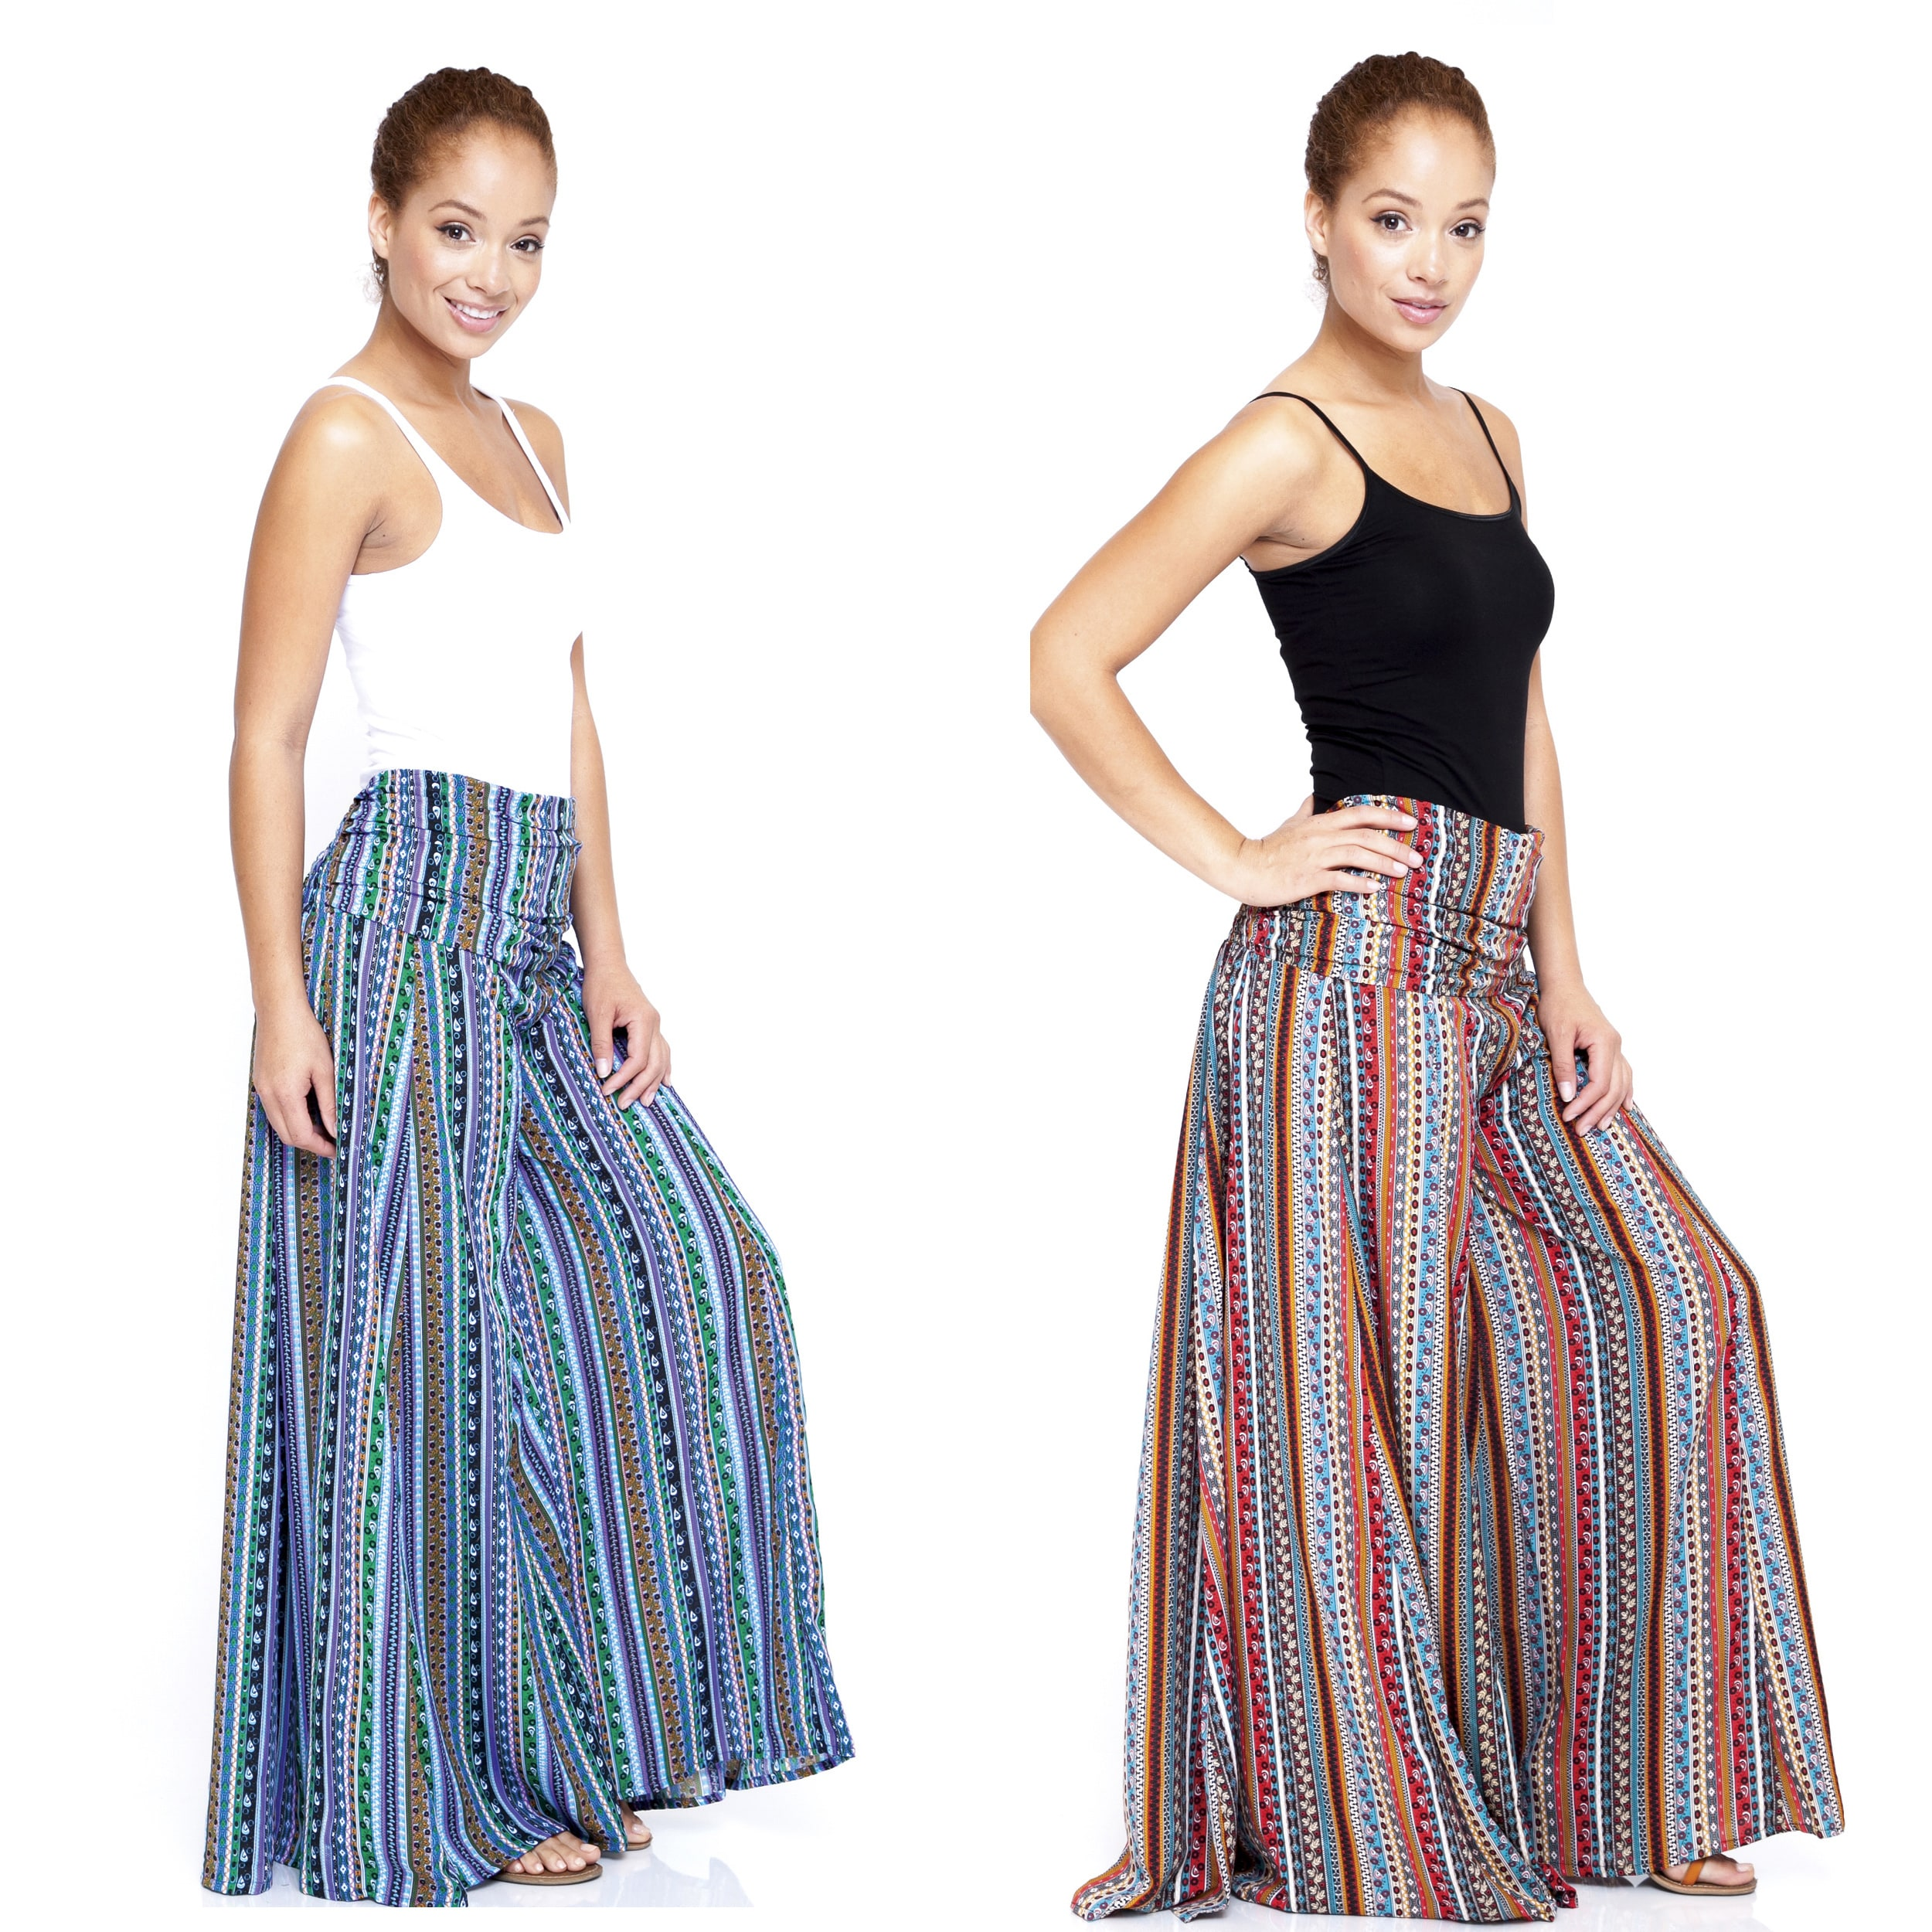 Women's Floral Printed Wide-leg Palazzo Pants (India)